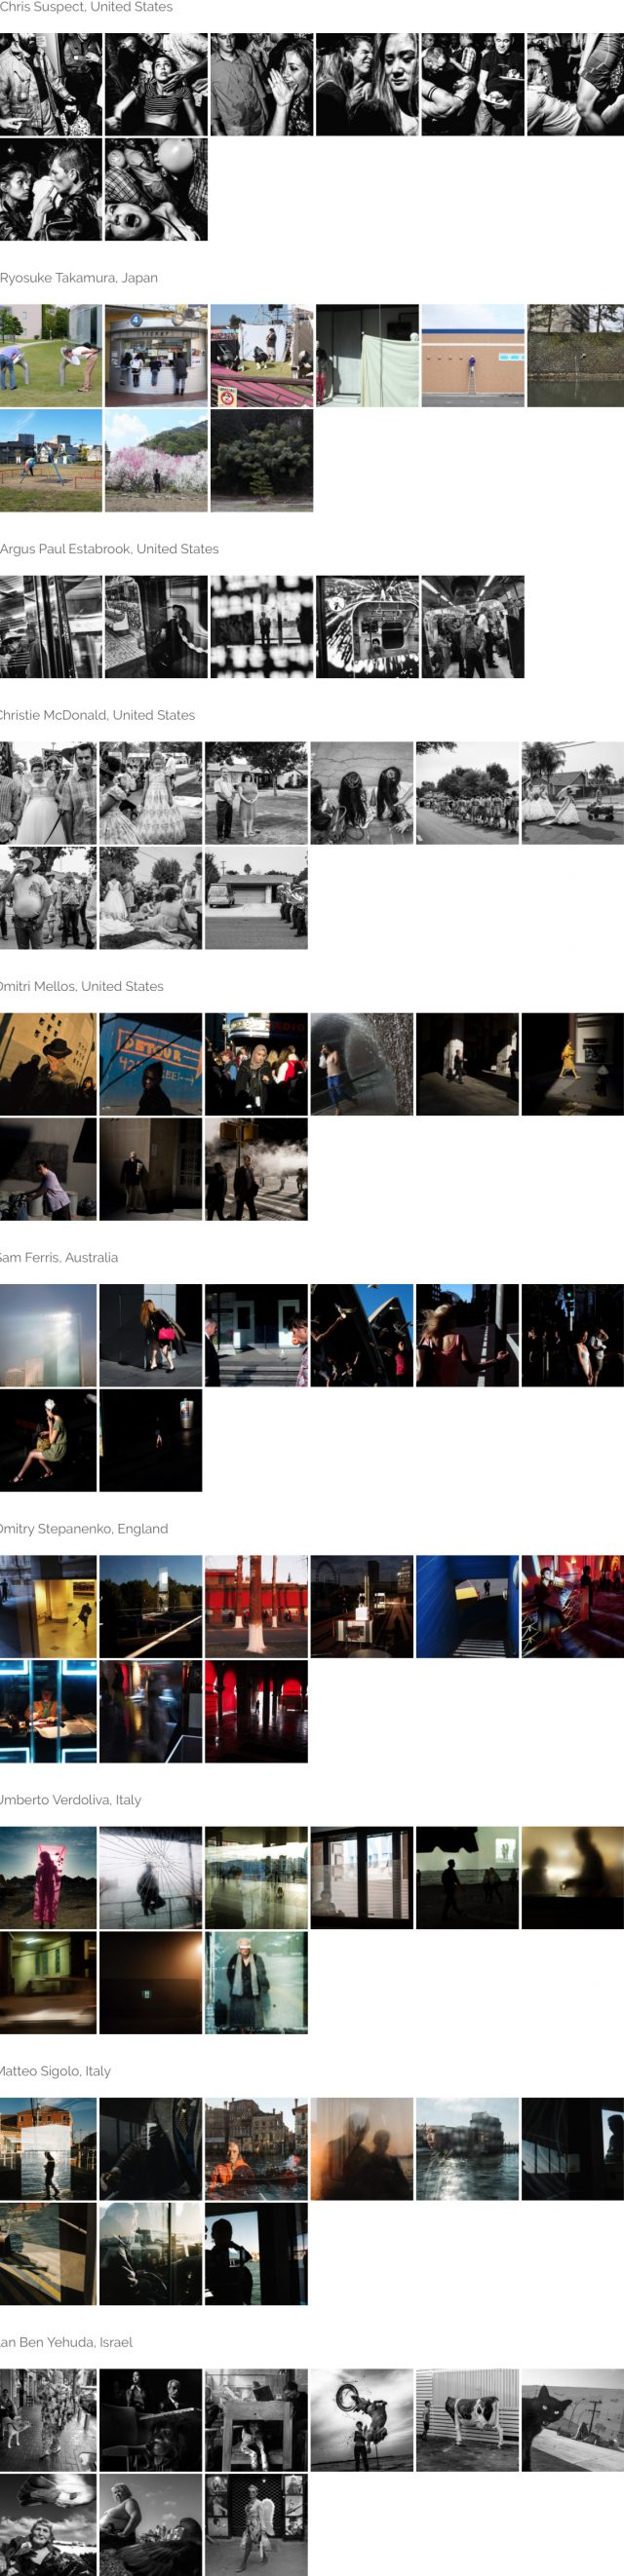 StreetFoto Finalists - Series Category